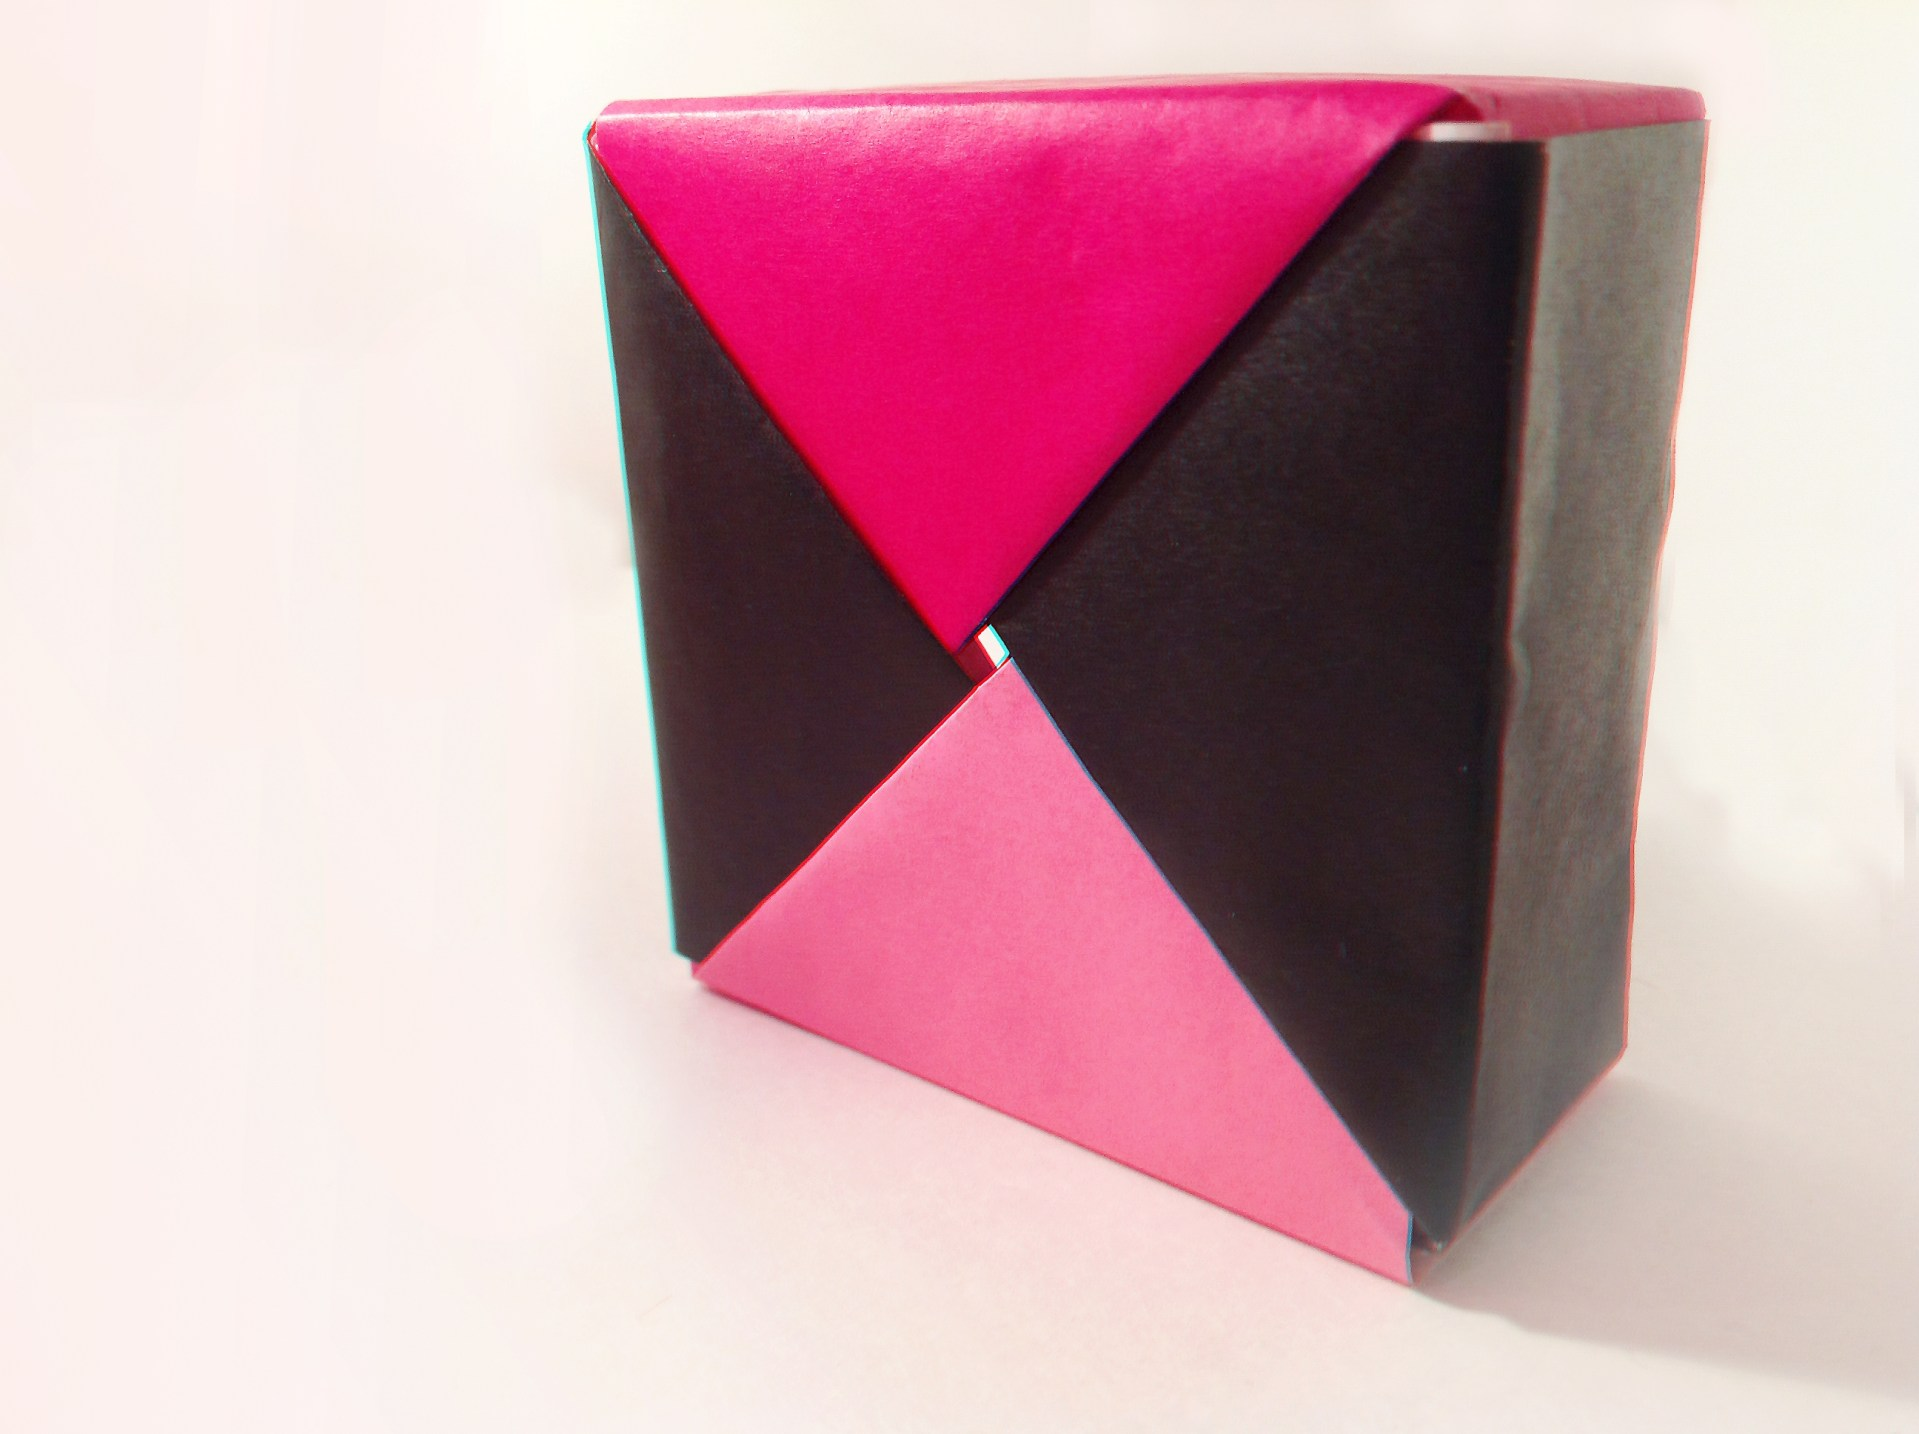 Swirled Square Origami Box by Carrie Gates